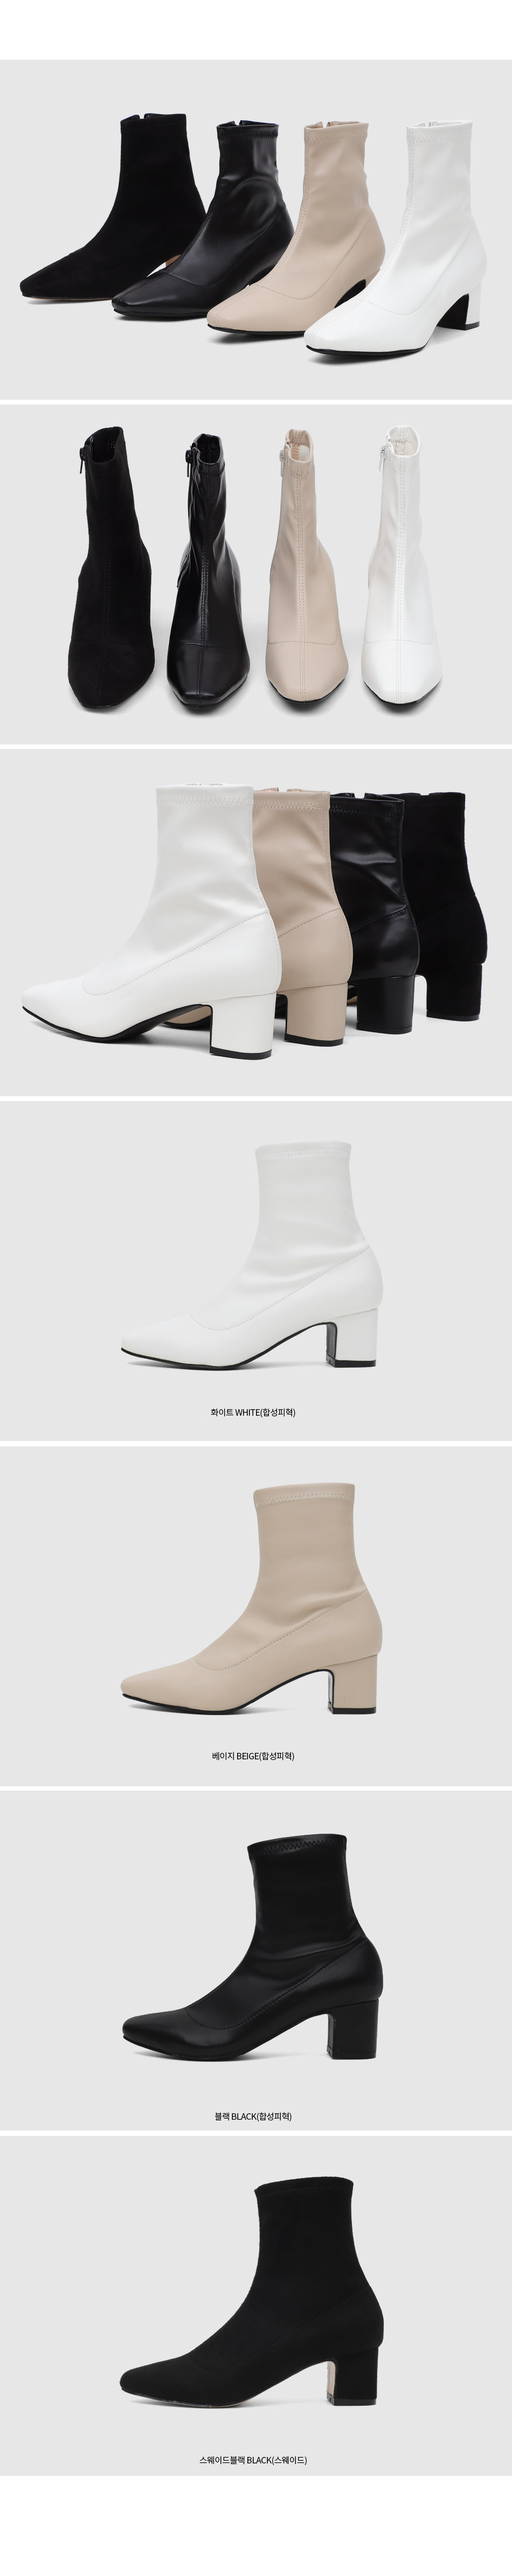 Isshu Two Material Shirring Ankle Zip Socks Boots 1858